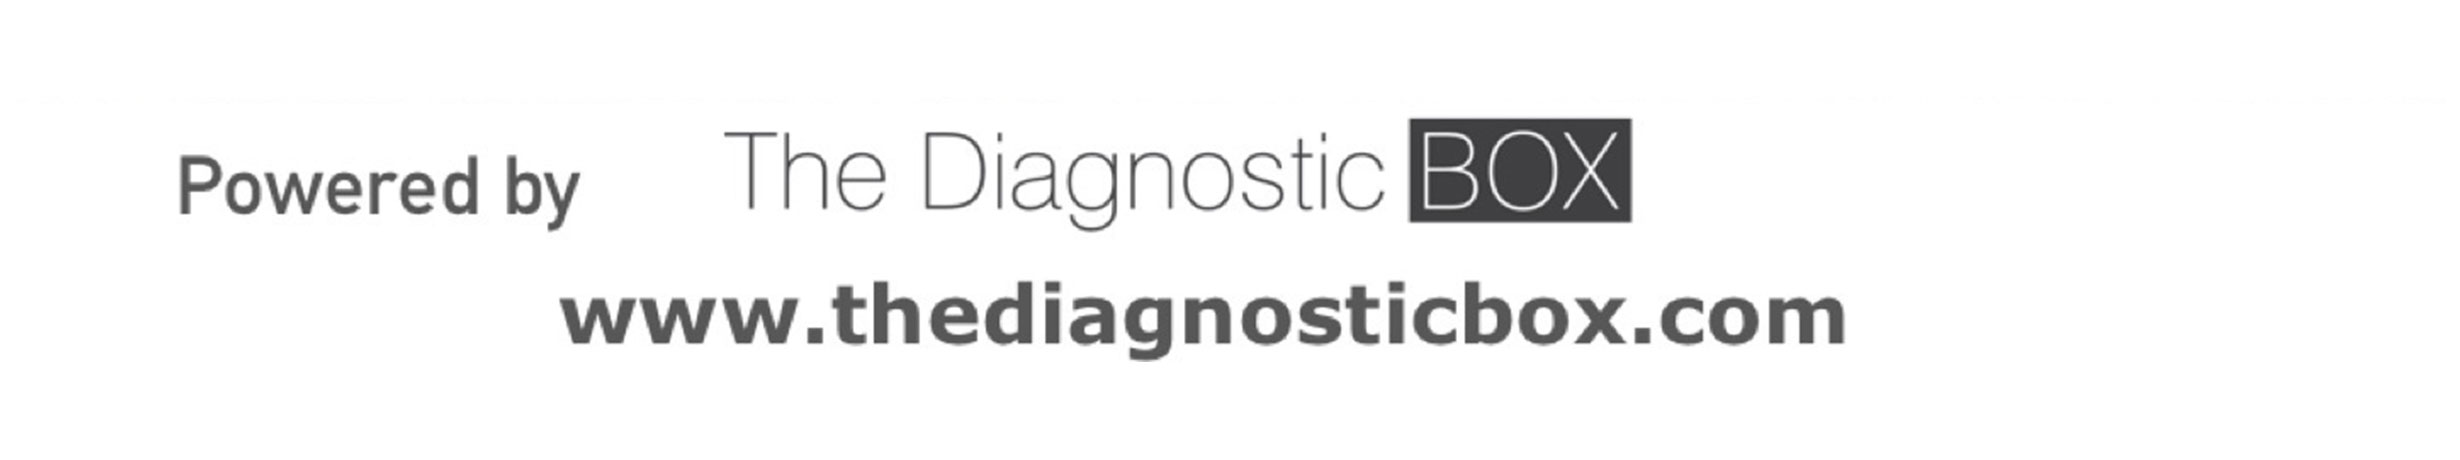 The Diagnostic Box